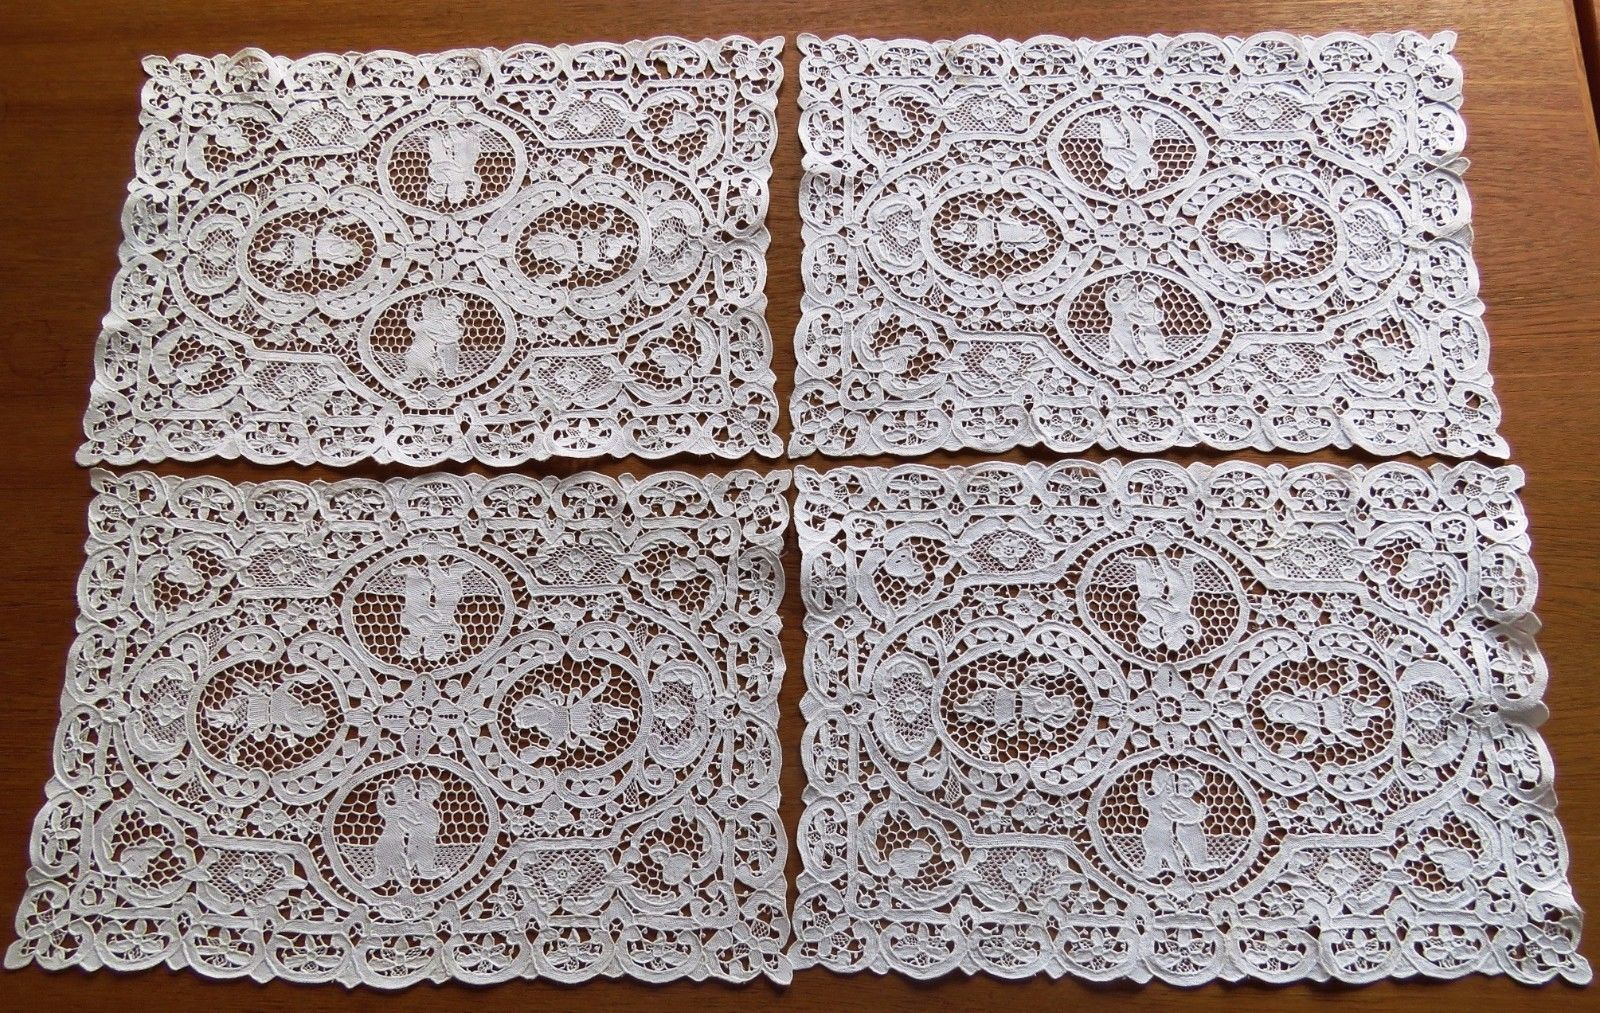 4 Antique Lace Placemats White Needlelace Figural Table Place Mat Set Lady Woman (L&T-253)